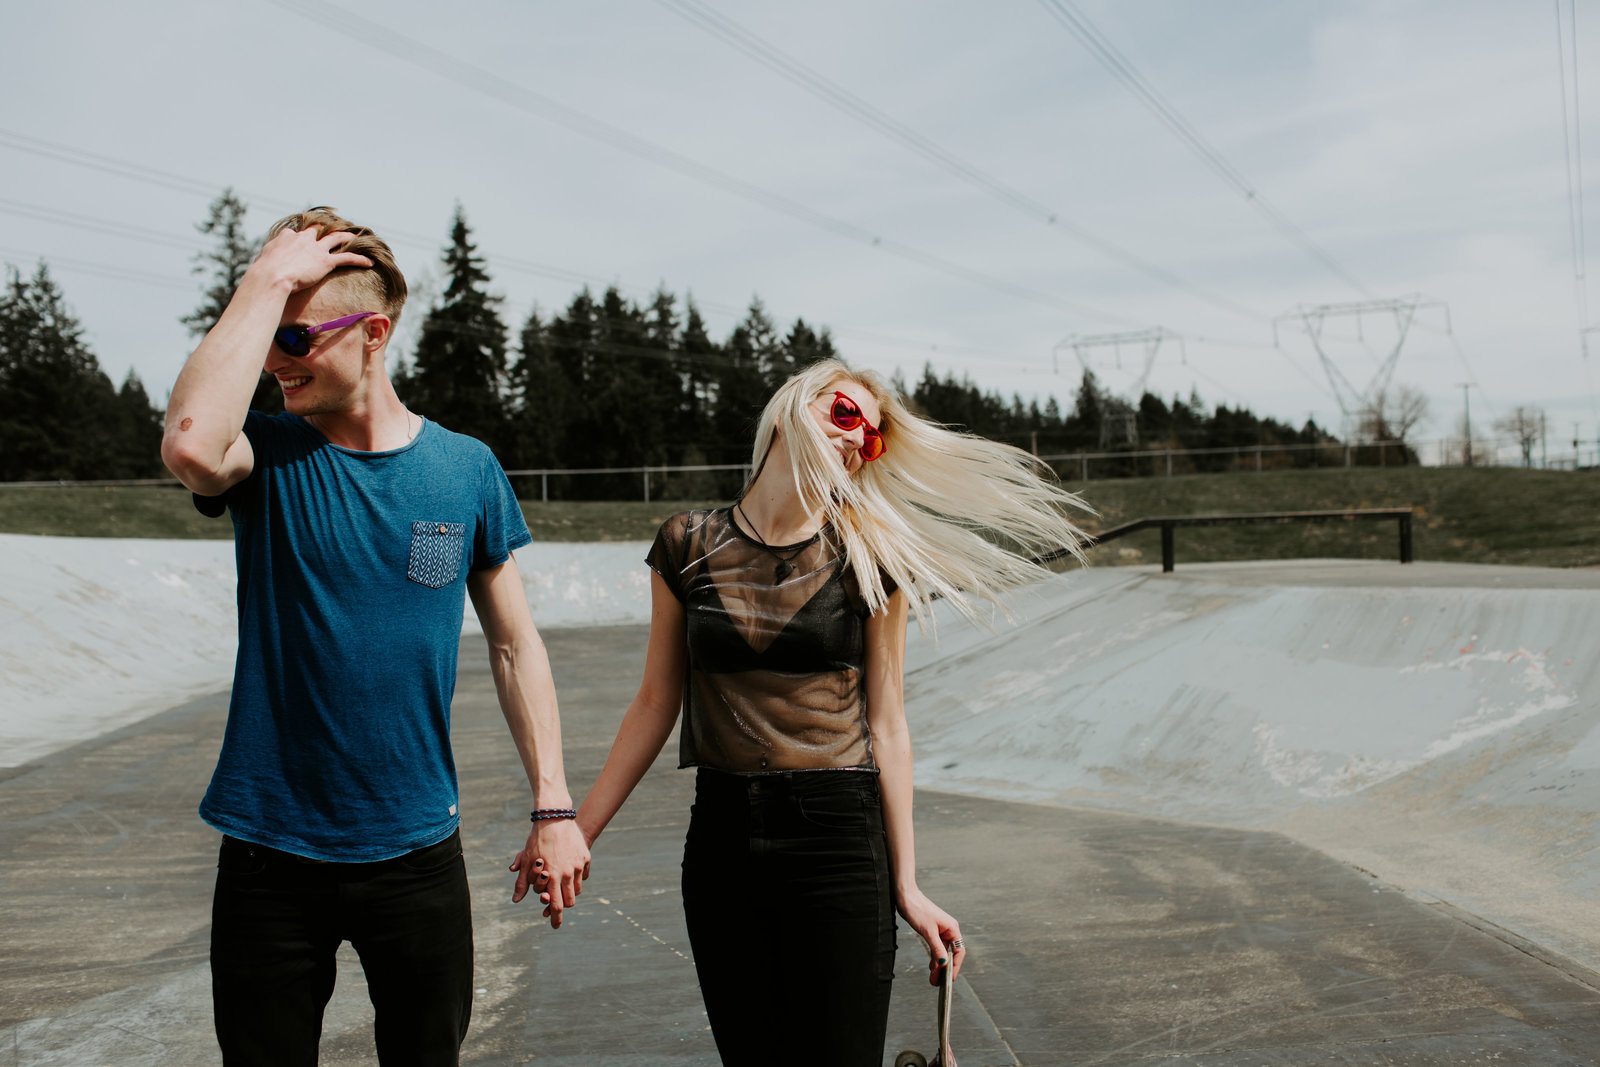 SKATE-PARK-ENGAGEMENT-MEGHAN-HEMSTRA-PHOTOGRAPHY-6